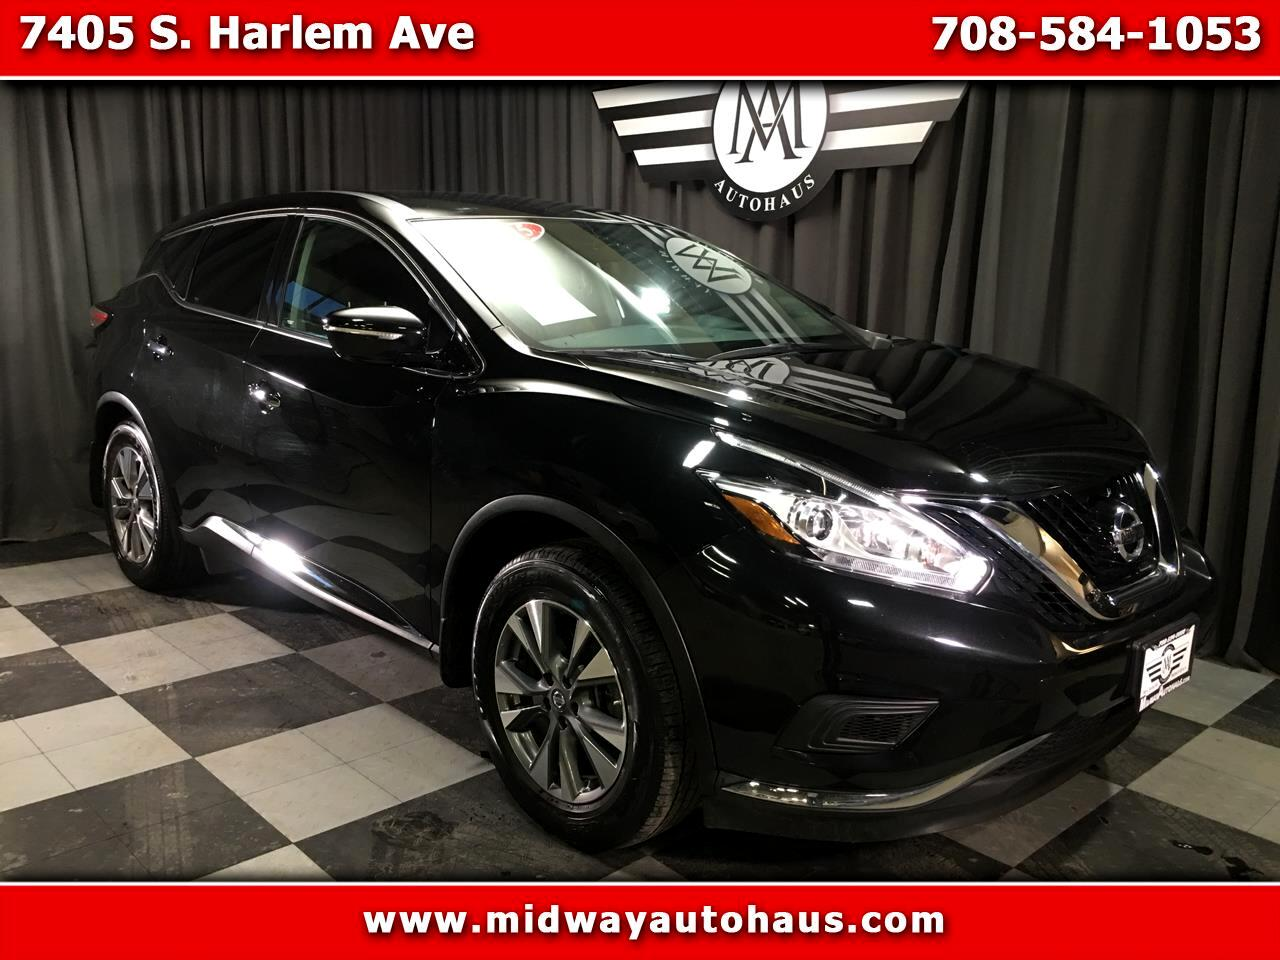 2015 Nissan Murano AWD 4dr S